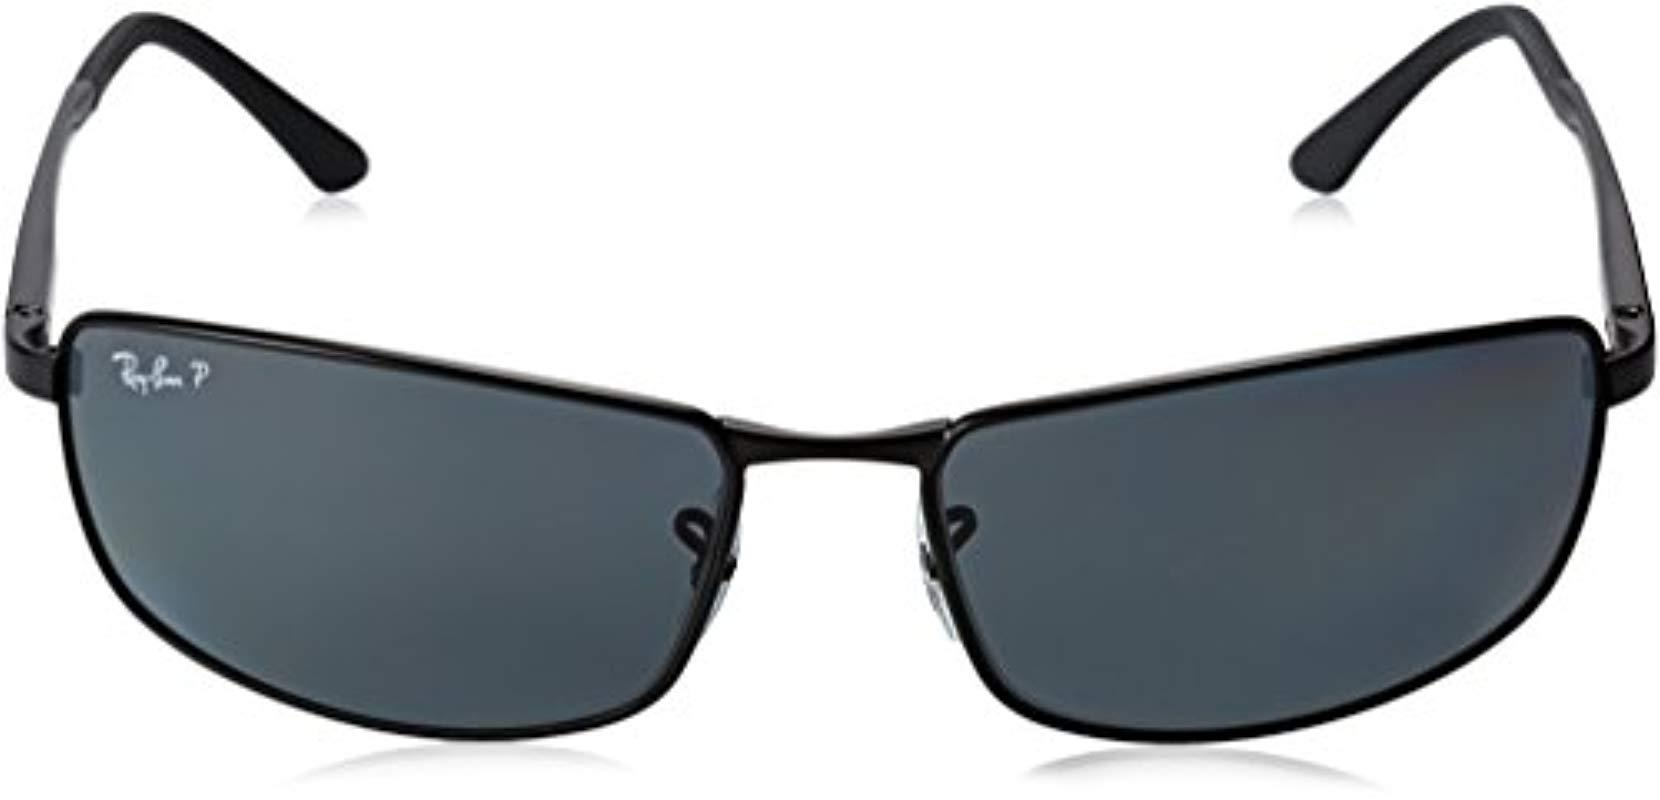 4cd09f40289 Ray-Ban - Black Rb3498 Sunglasses for Men - Lyst. View fullscreen